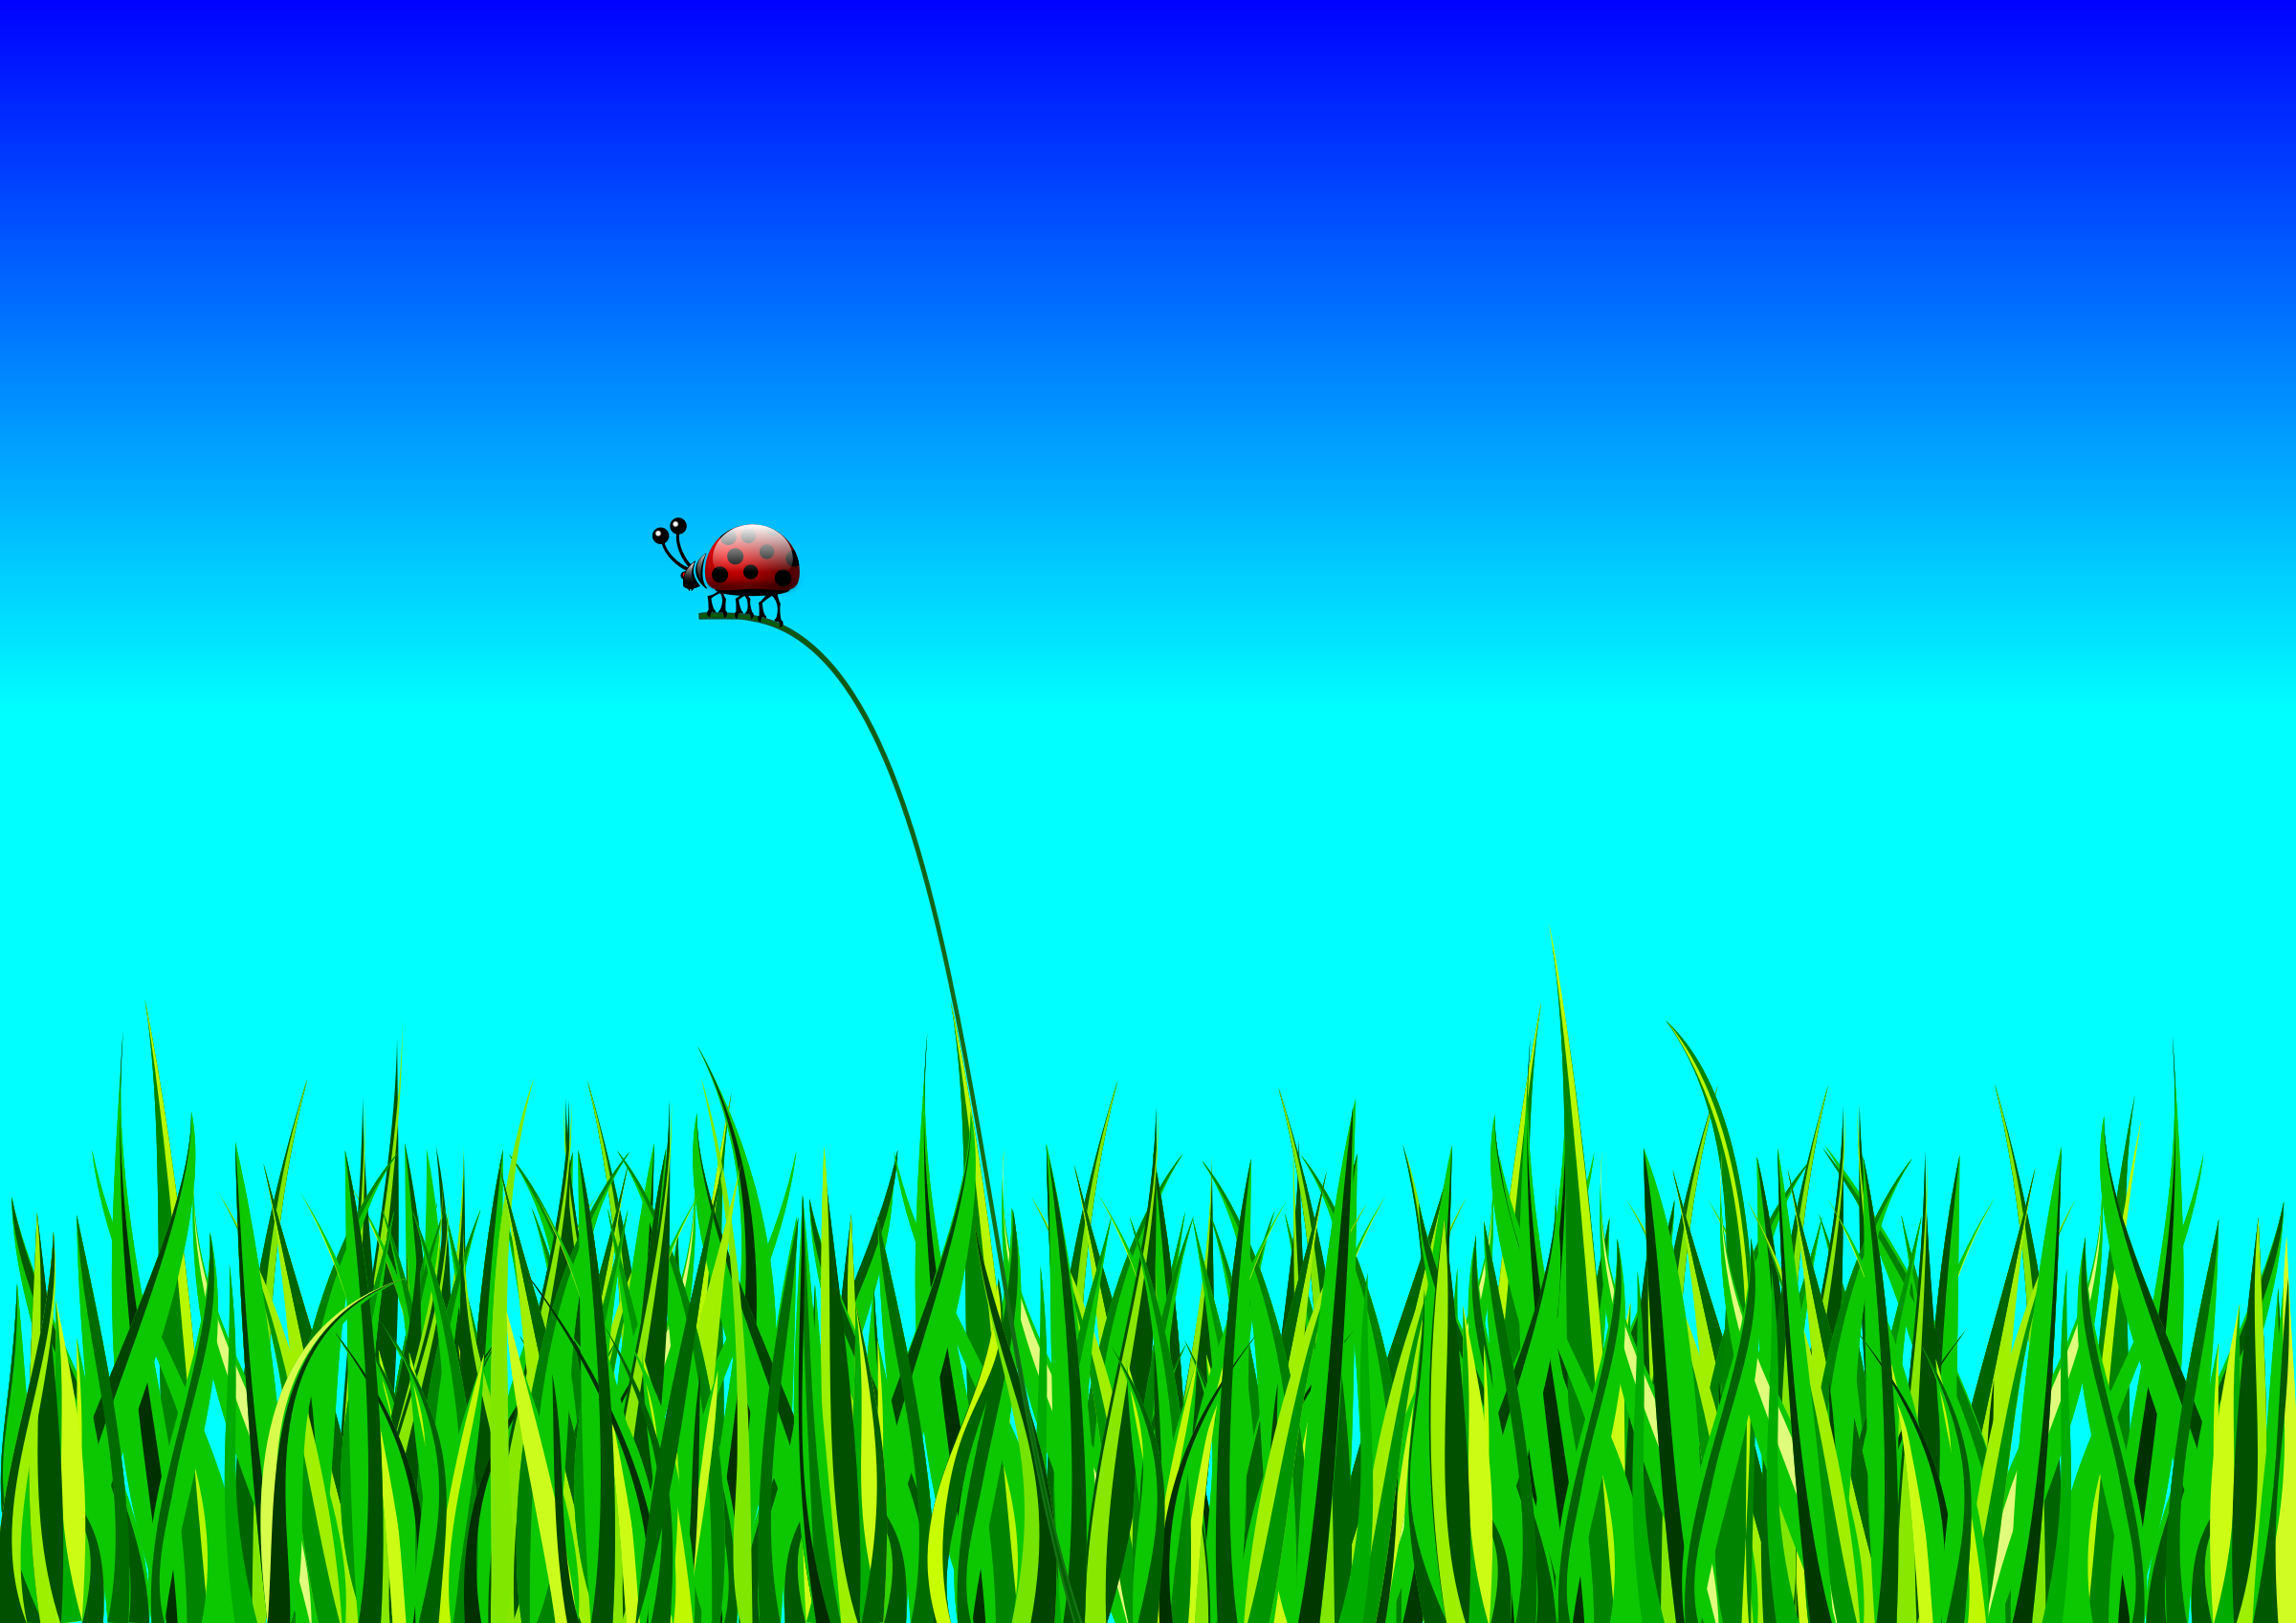 Grass with bug by roshellin